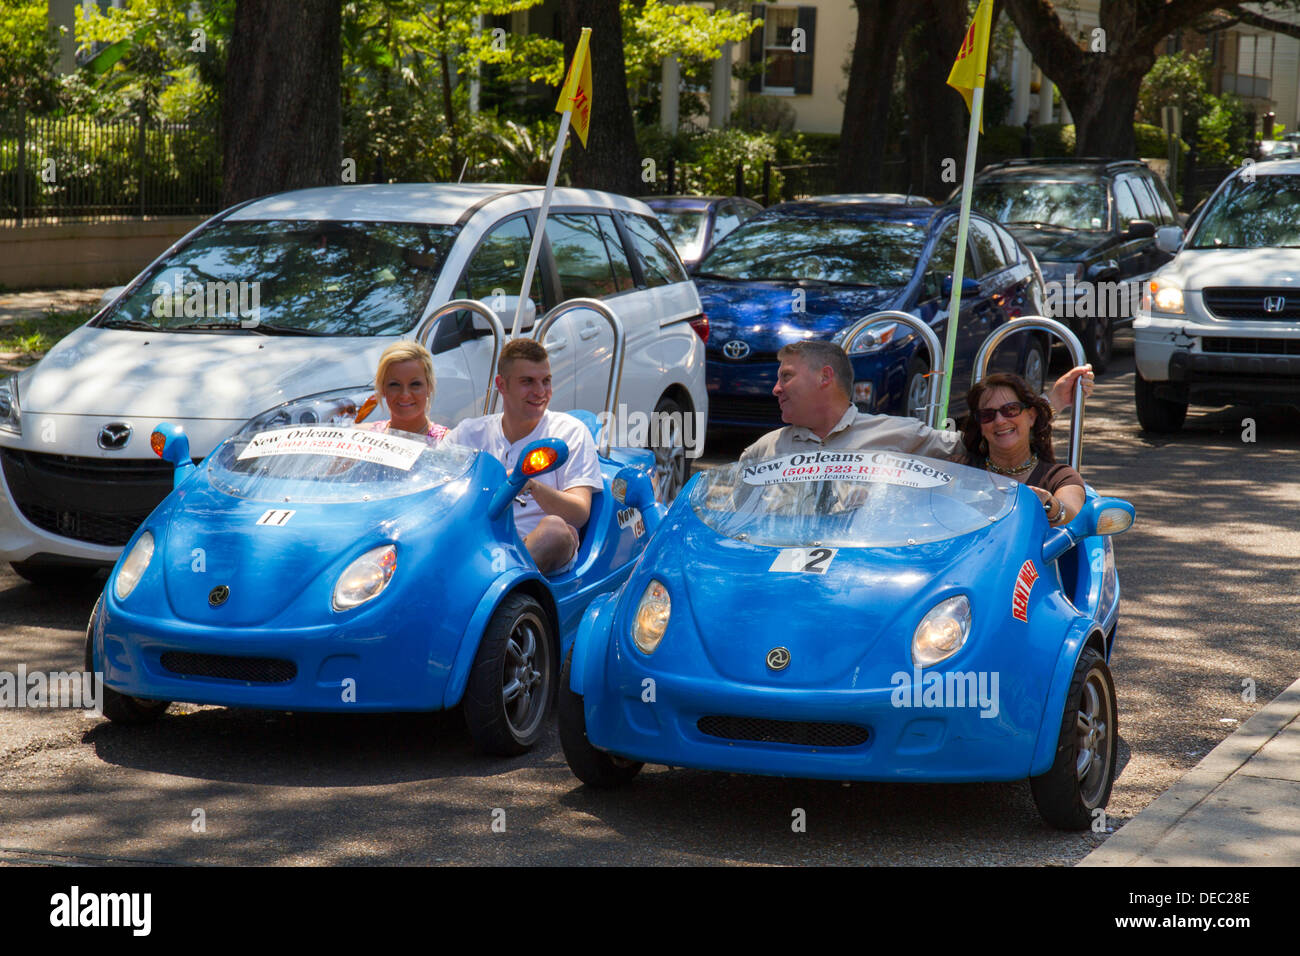 New Orleans cruisers rental buggy, New Orleans, LA, USA - Stock Image